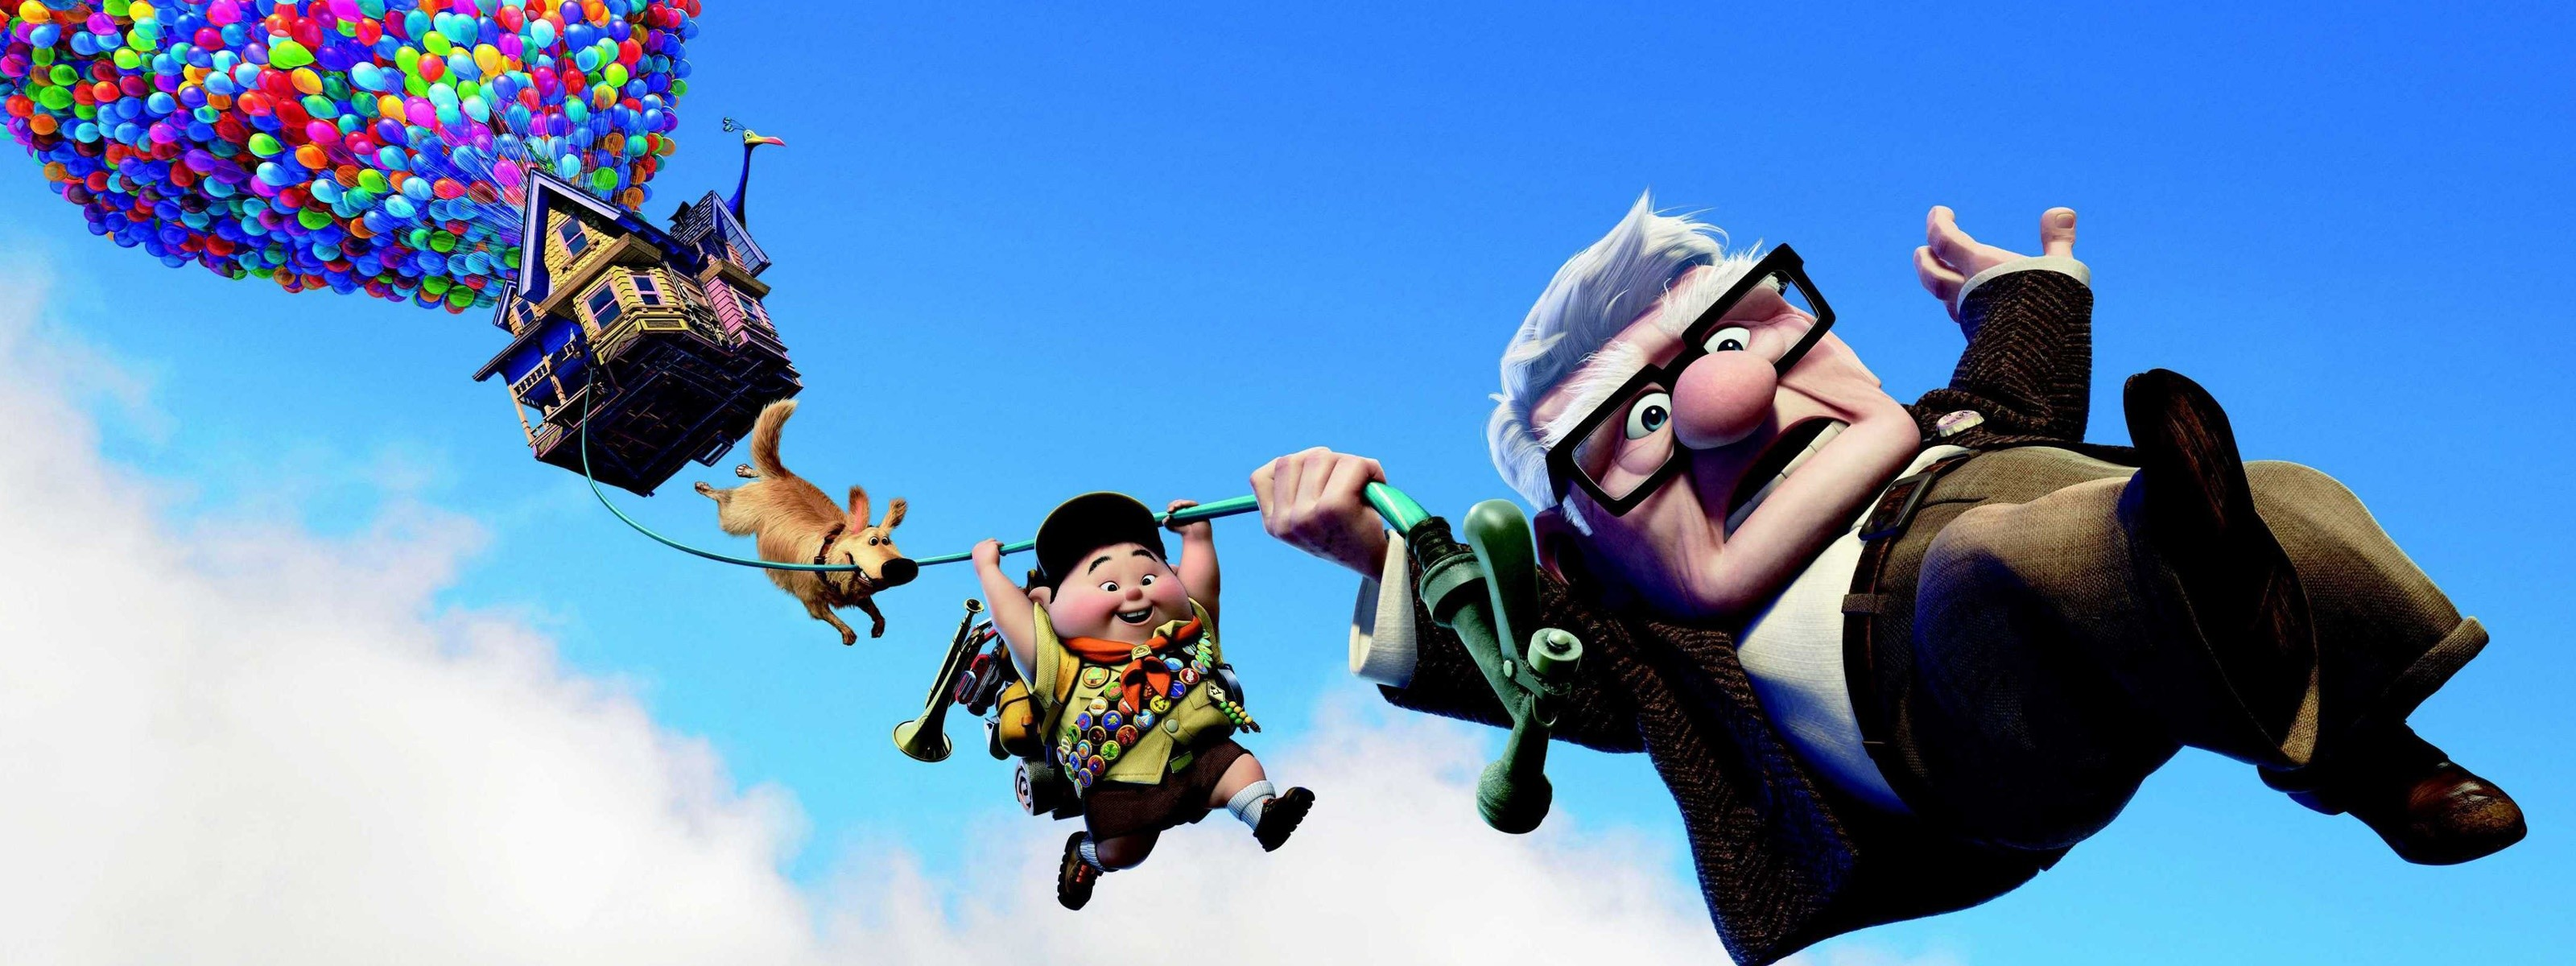 3200x1200 Pixar's UP Dual Monitor HD Wallpapers